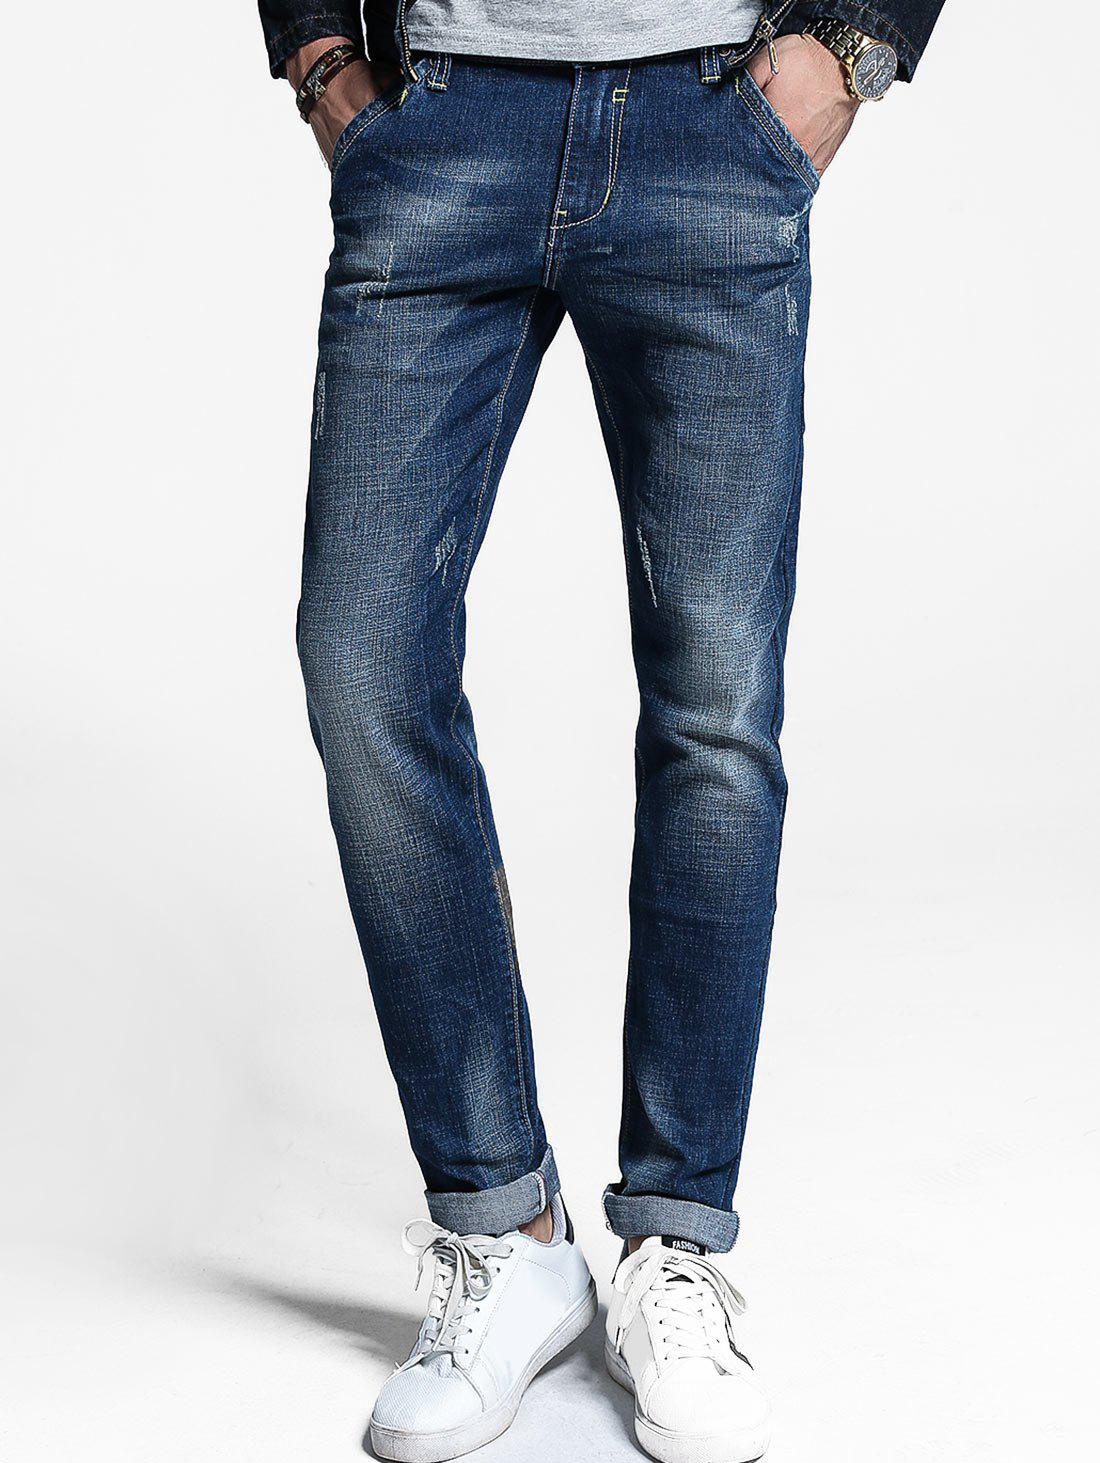 Abercrombie Fitch - Denim Bleu 32